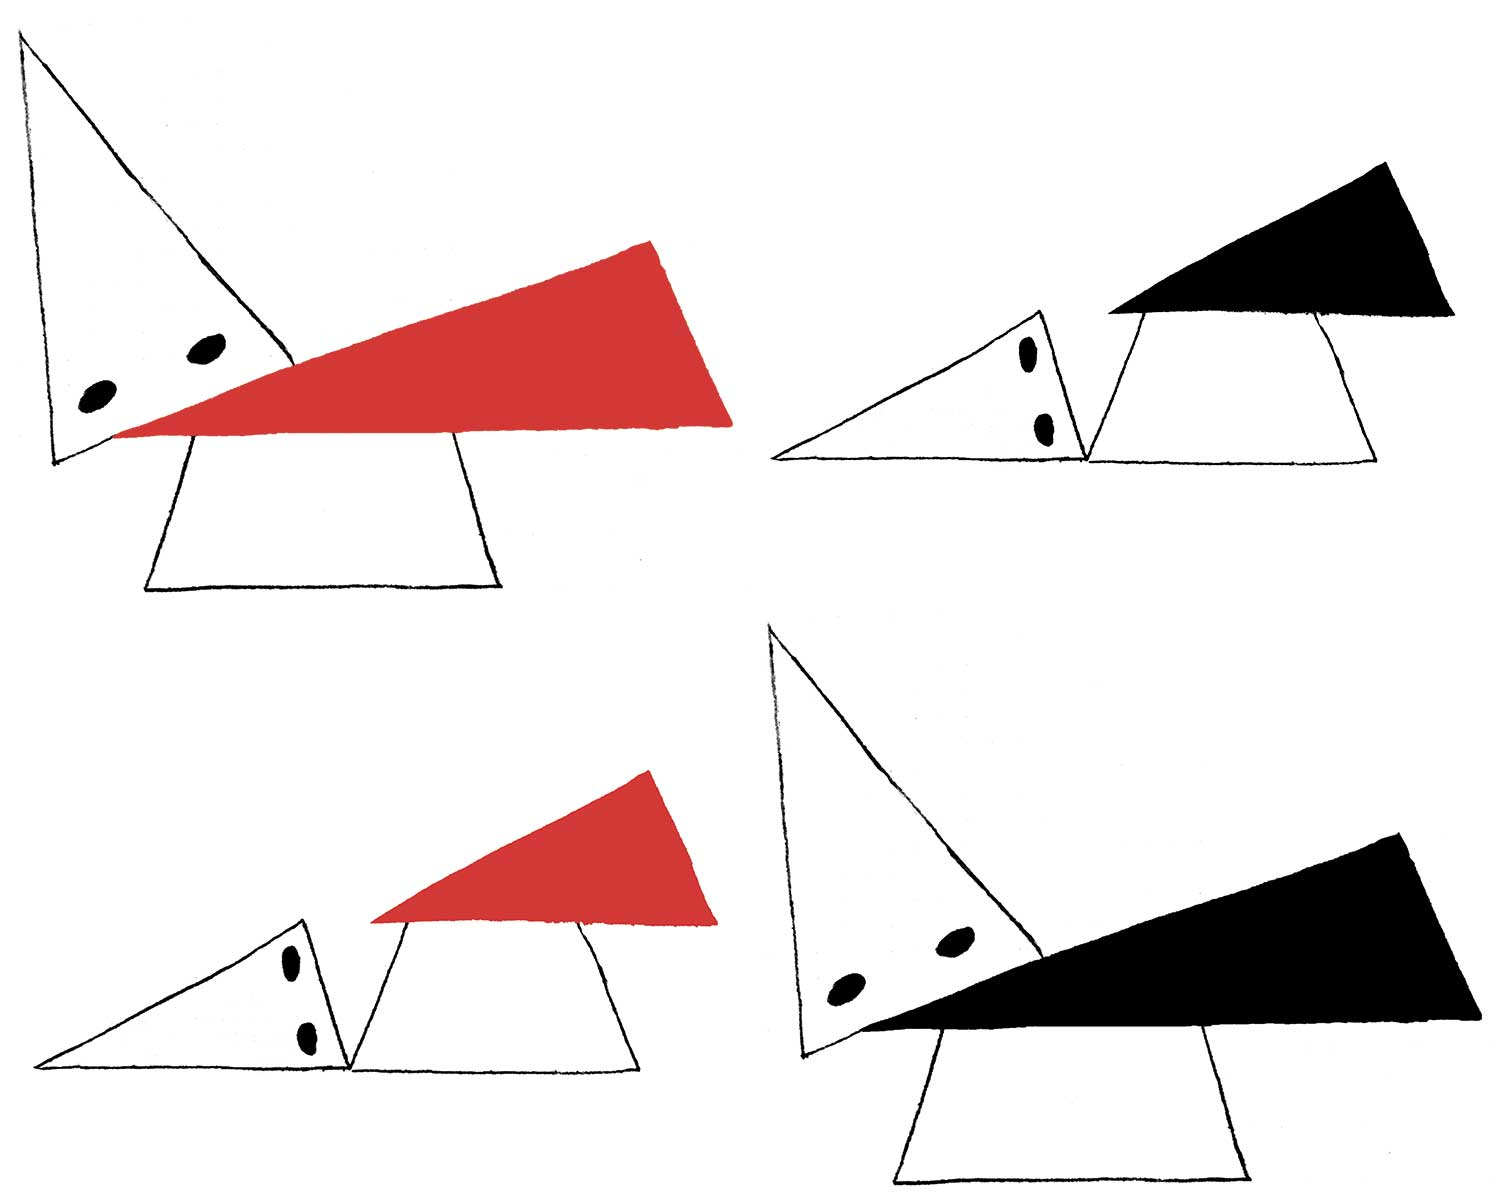 Playing off El Lissitzky's 1919 painting,  Strike the Whites with the Red Wedge,   Red Wedge/Black Wedge  by  Josh MacPhee  is licensed under a  Creative Commons Attribution-ShareAlike 4.0 International License .